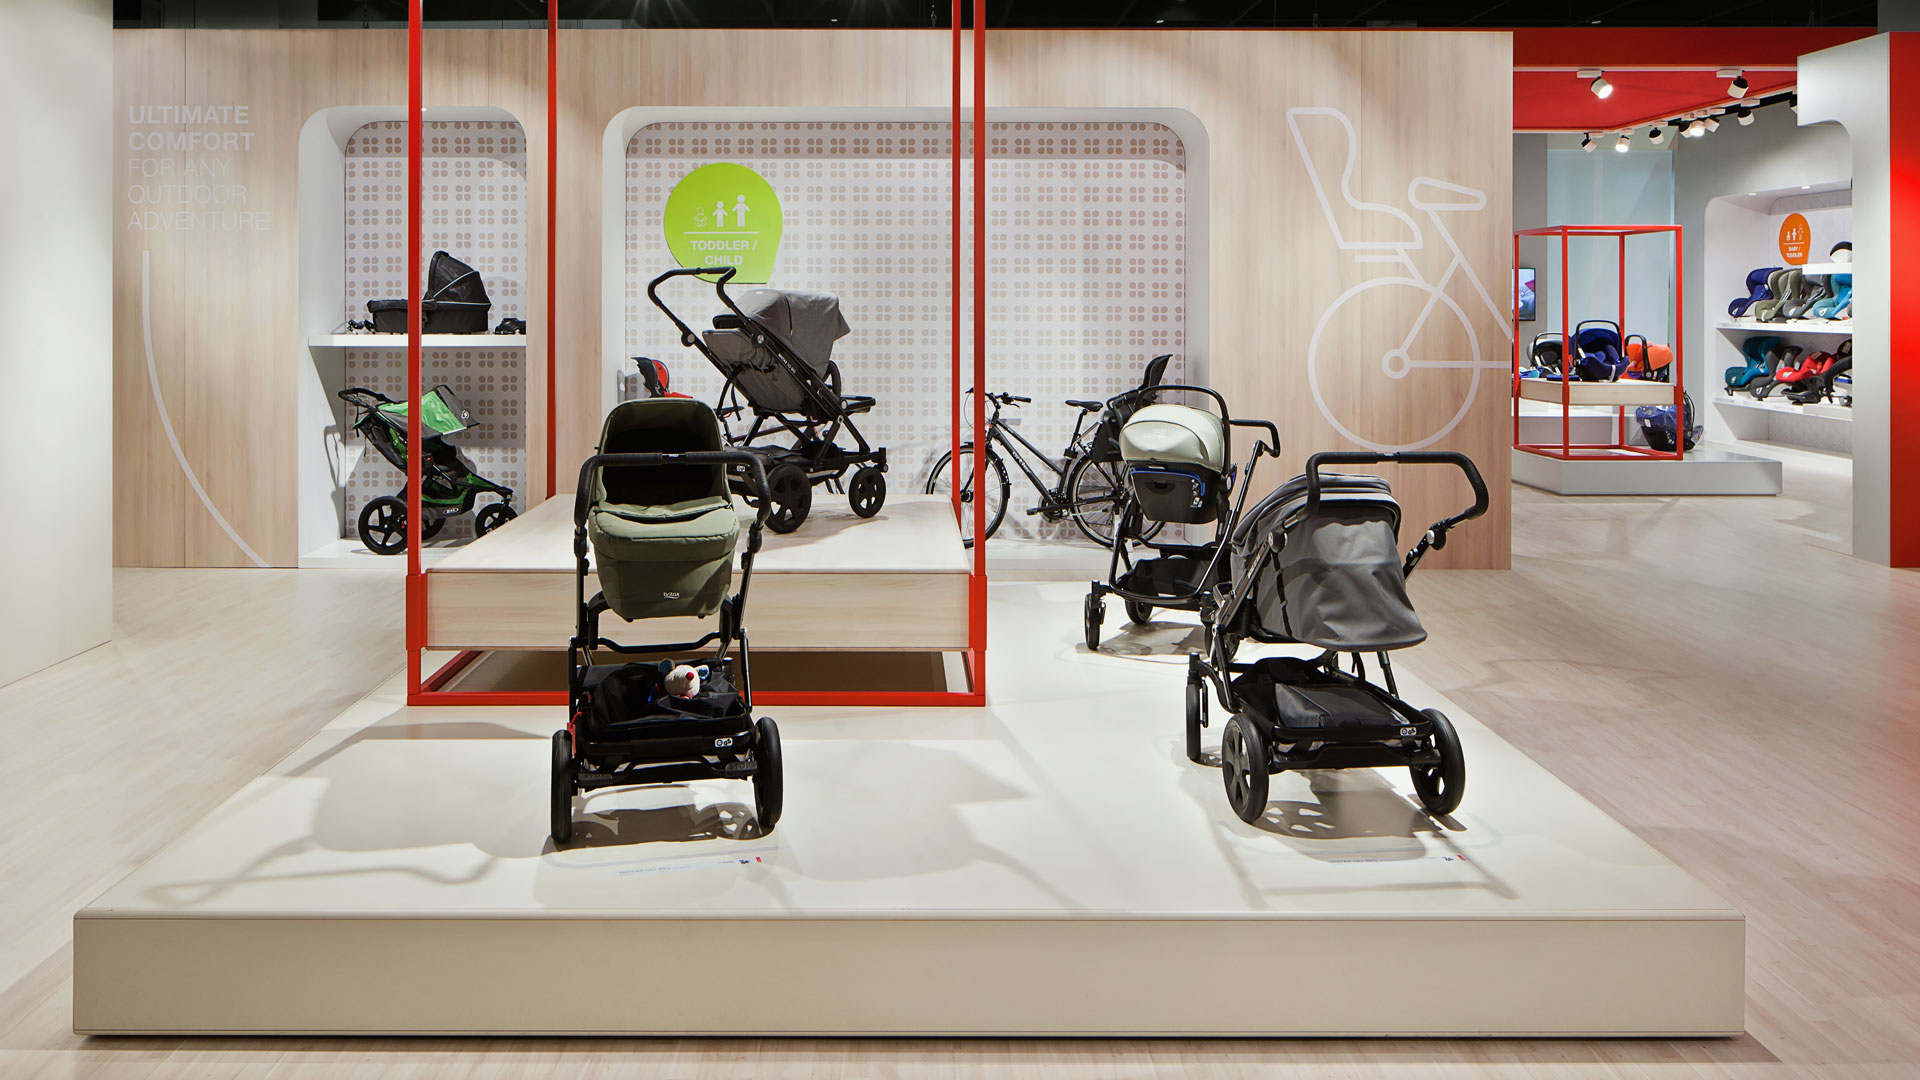 Dart stages the Britax fair stand at the Kind+Jugend 2016